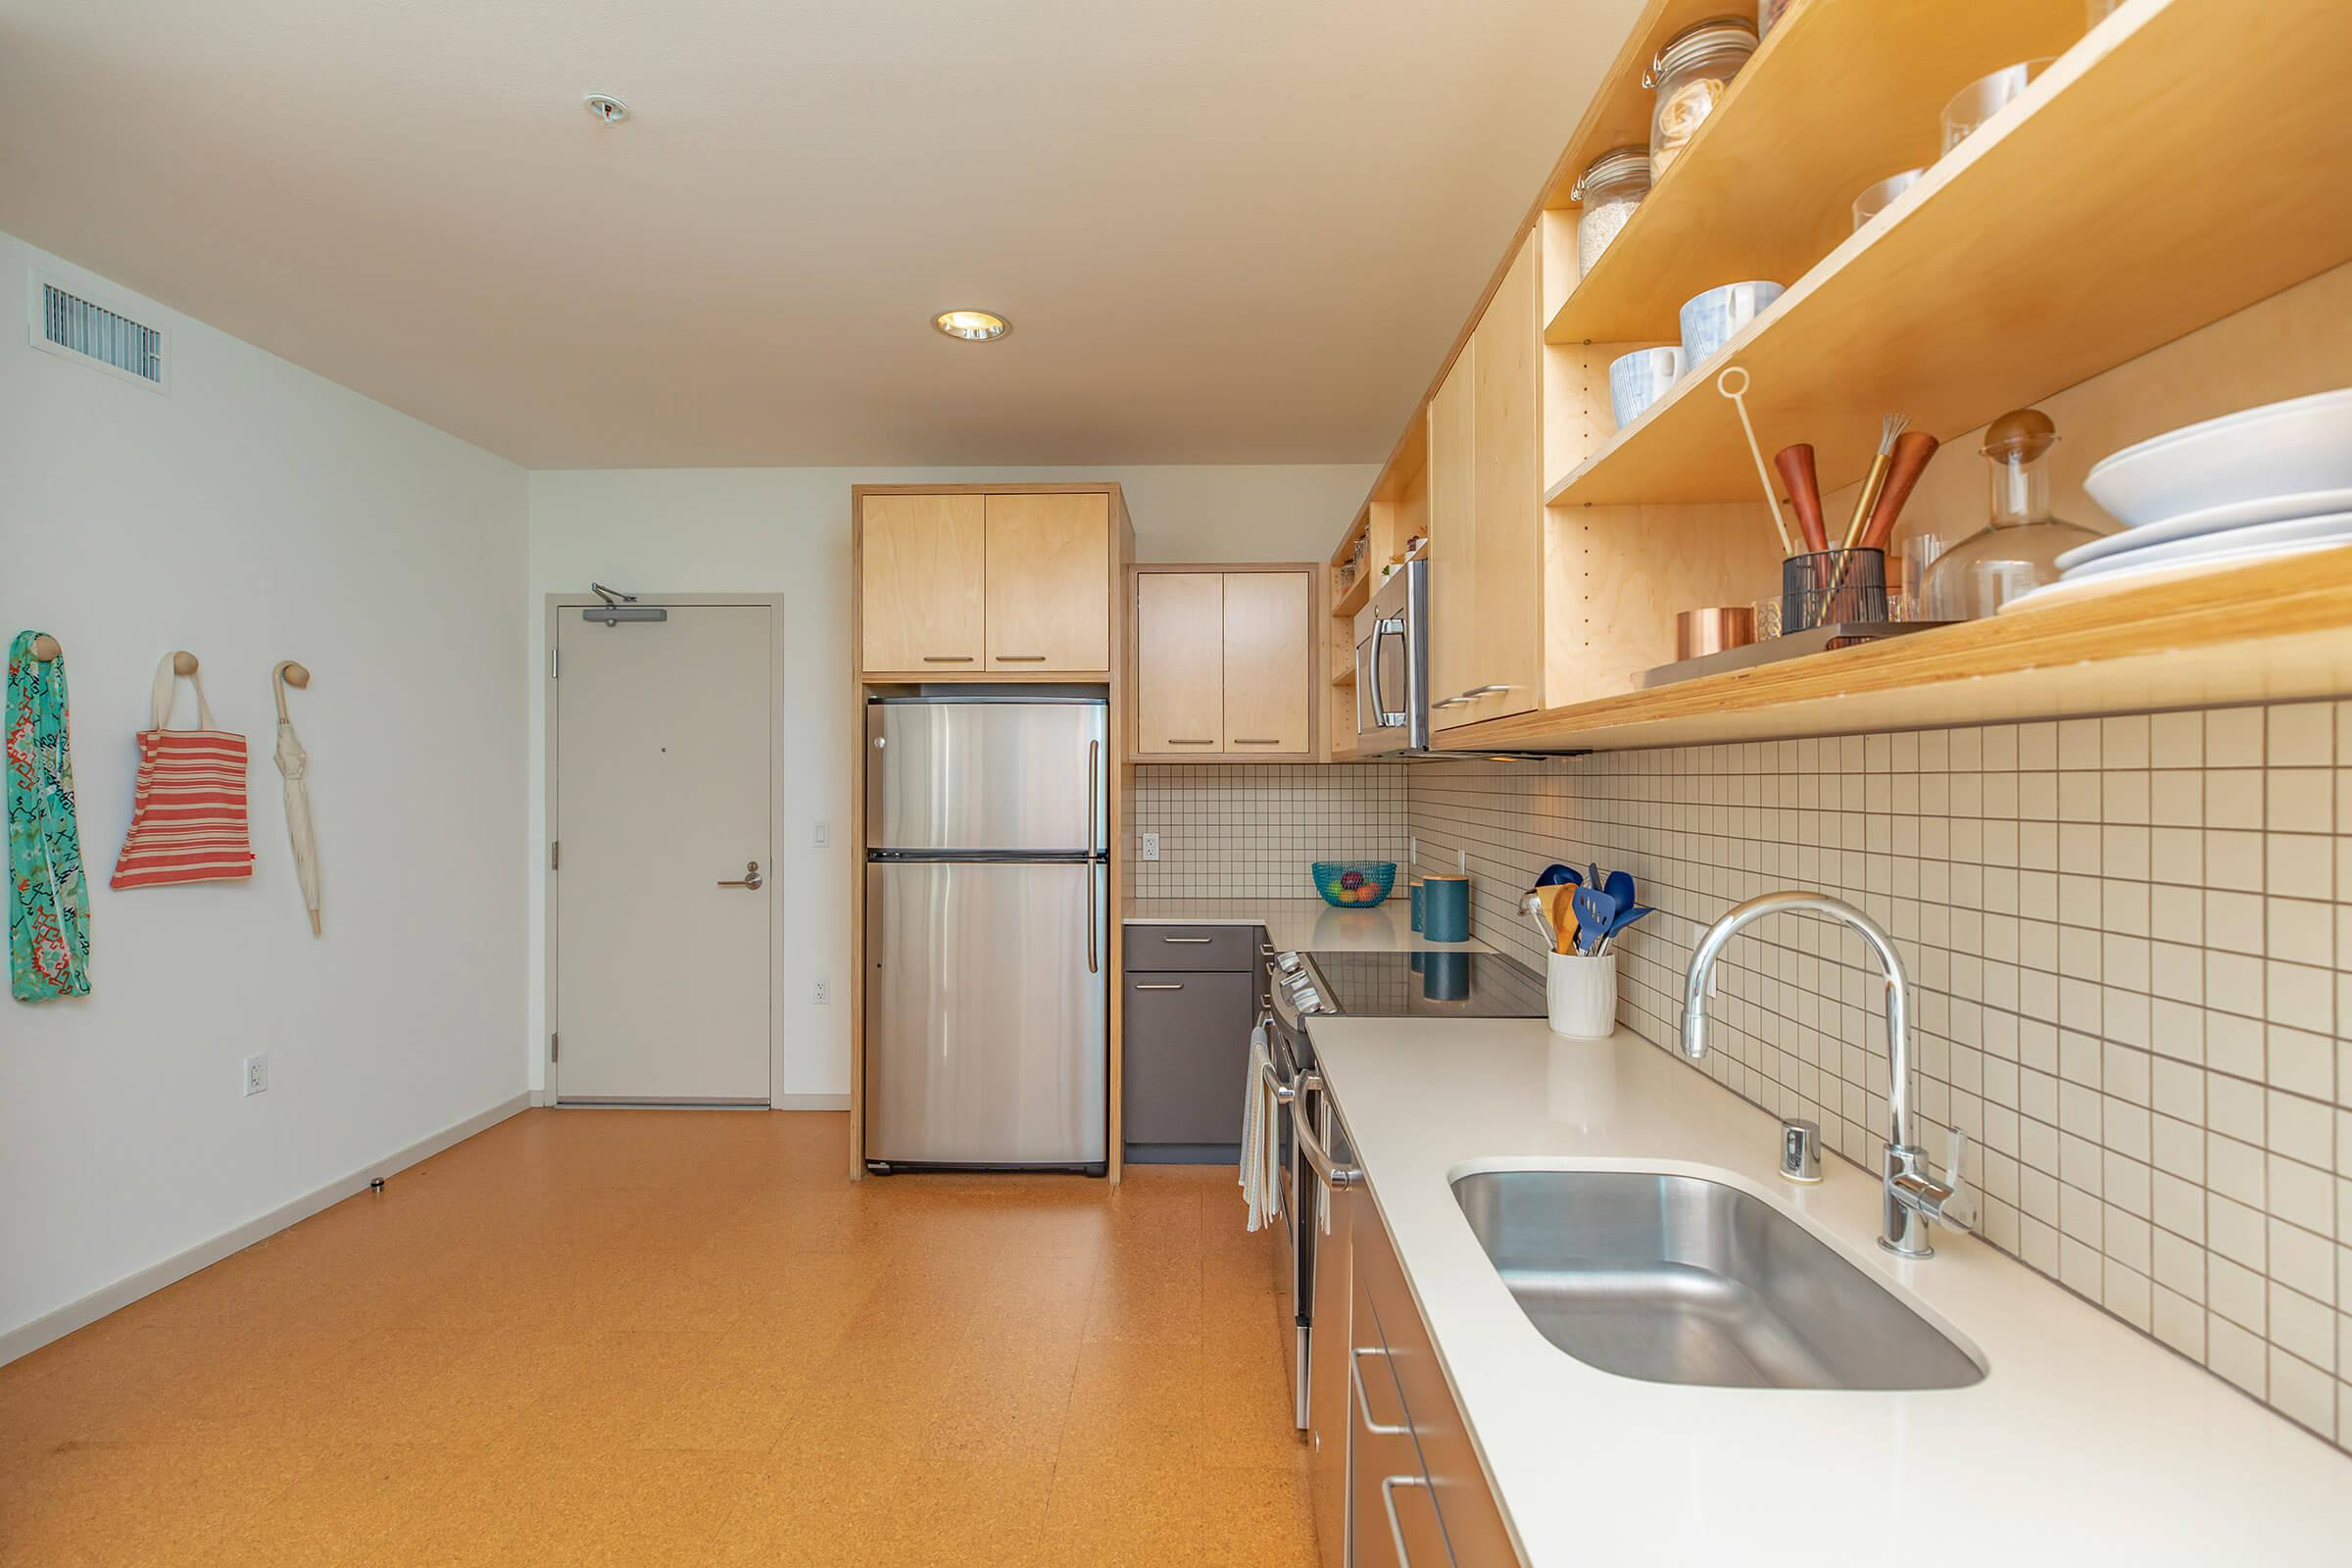 a kitchen with a sink and a counter in a room